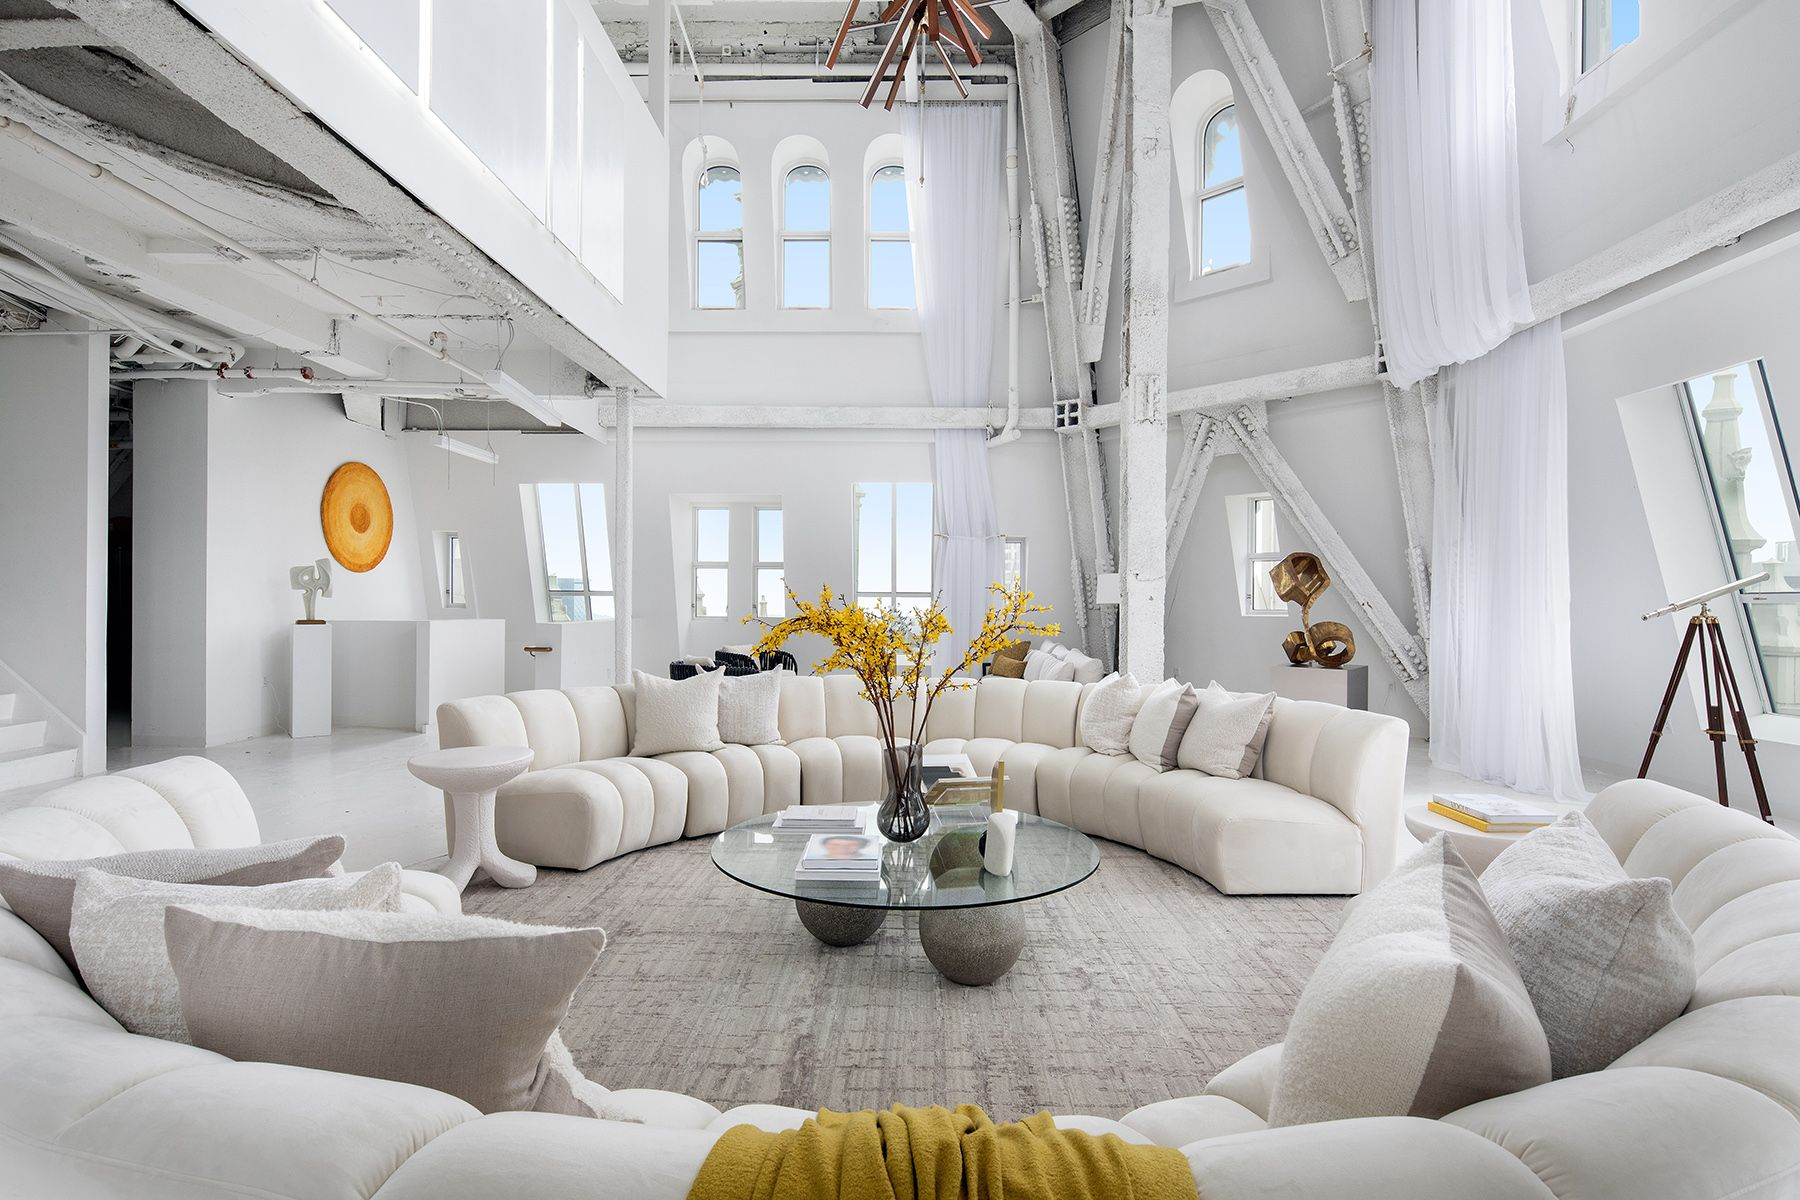 This Five-Level Penthouse in the Woolworth Building Is on the Market for $79 Million